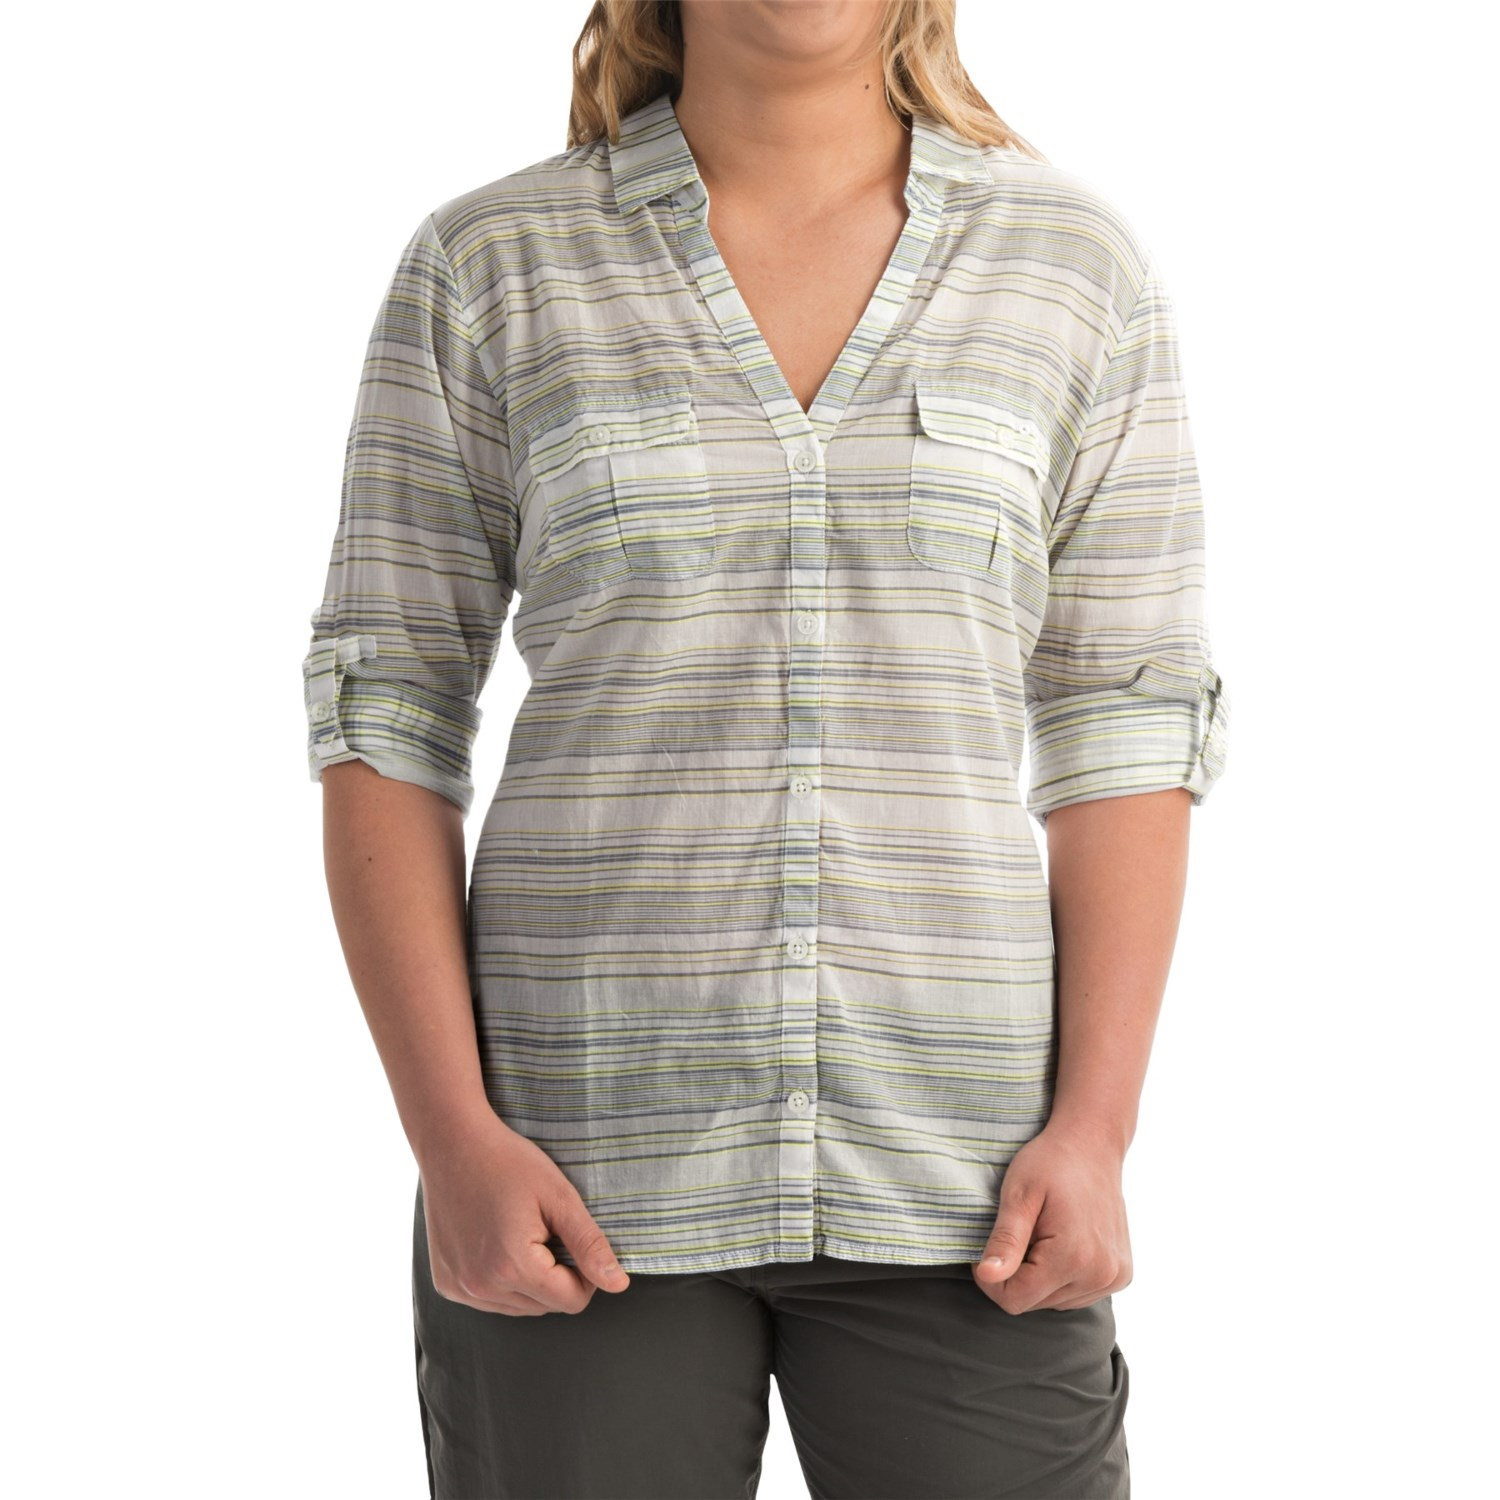 Columbia sportswear pfg sun drifter shirt for women for Columbia shirts womens pfg